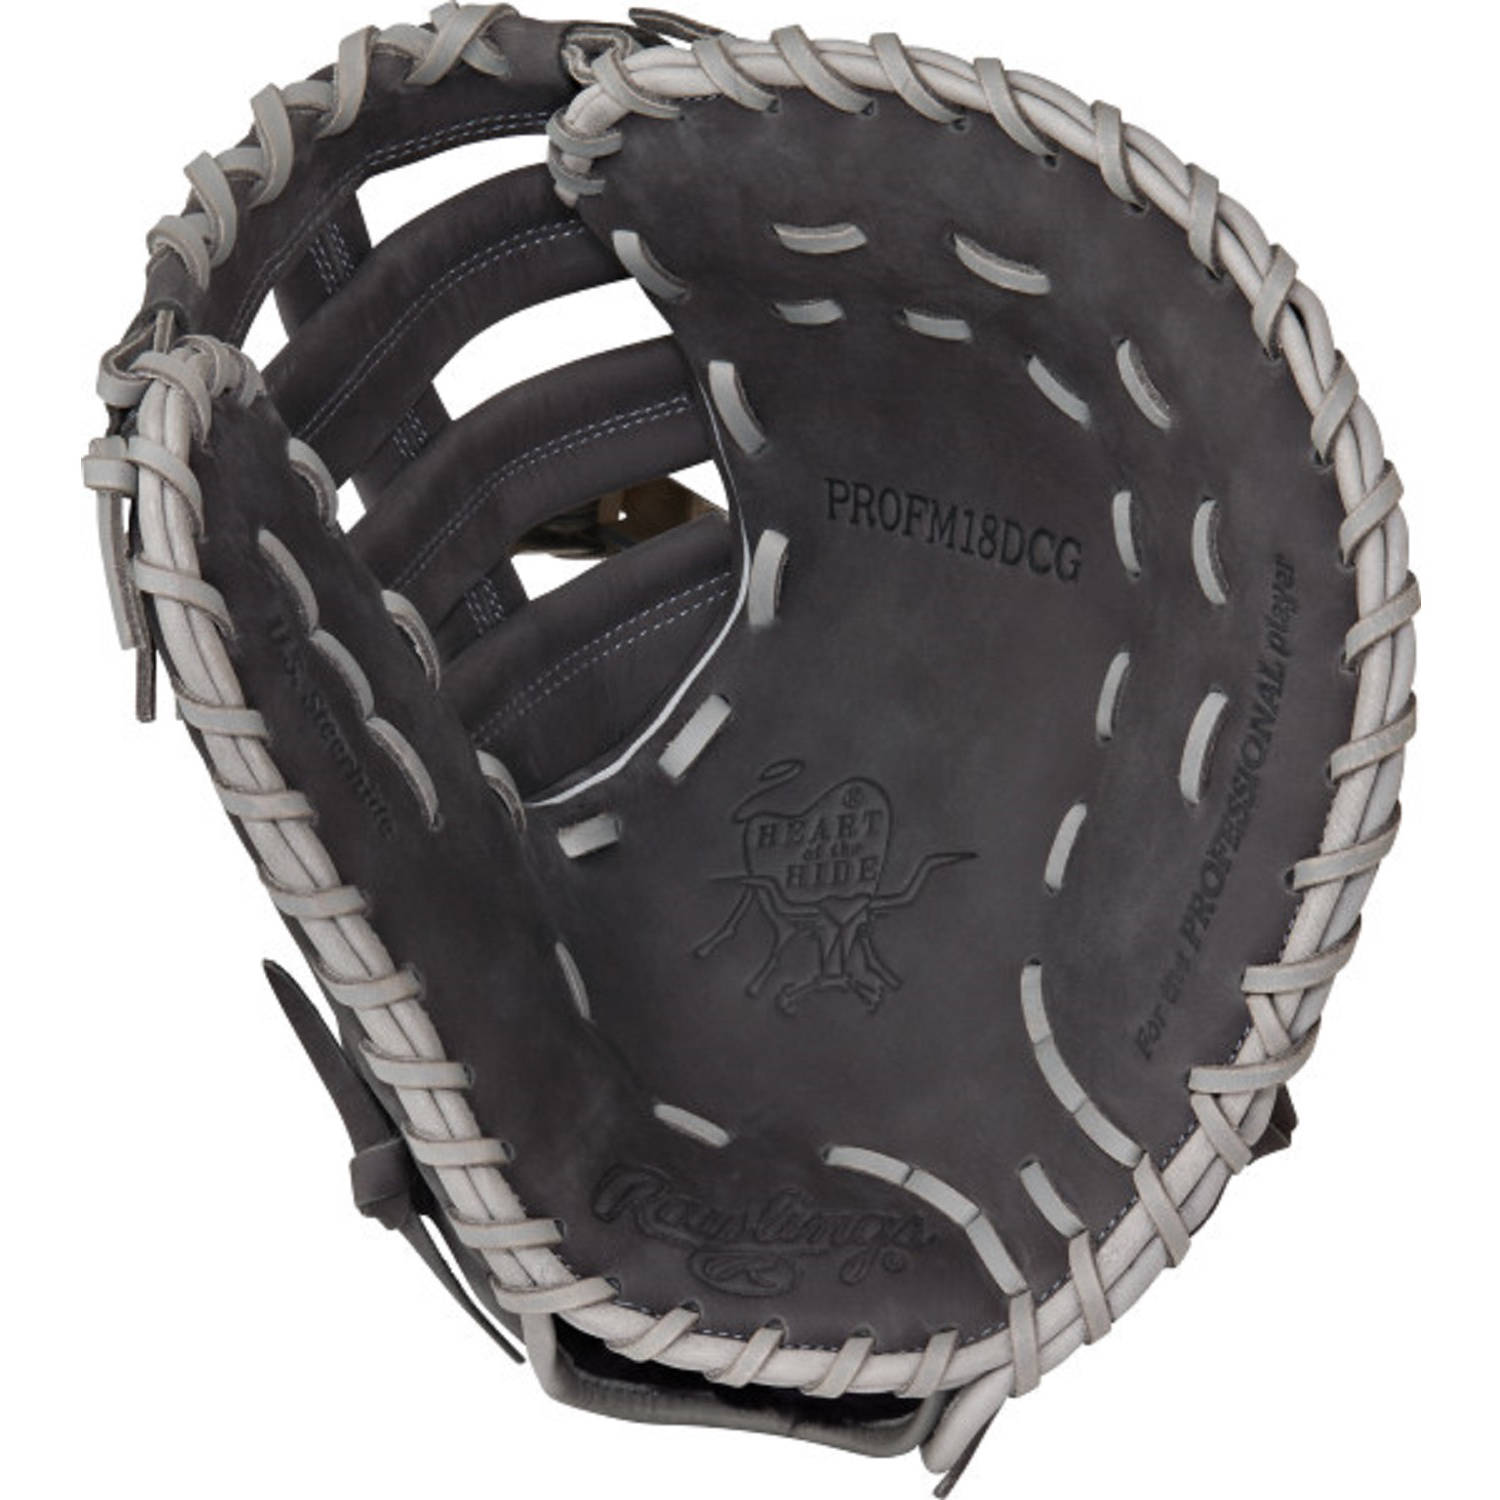 "Rawlings Heart of the Hide 12.5"" Dual Core First Base Mitt"